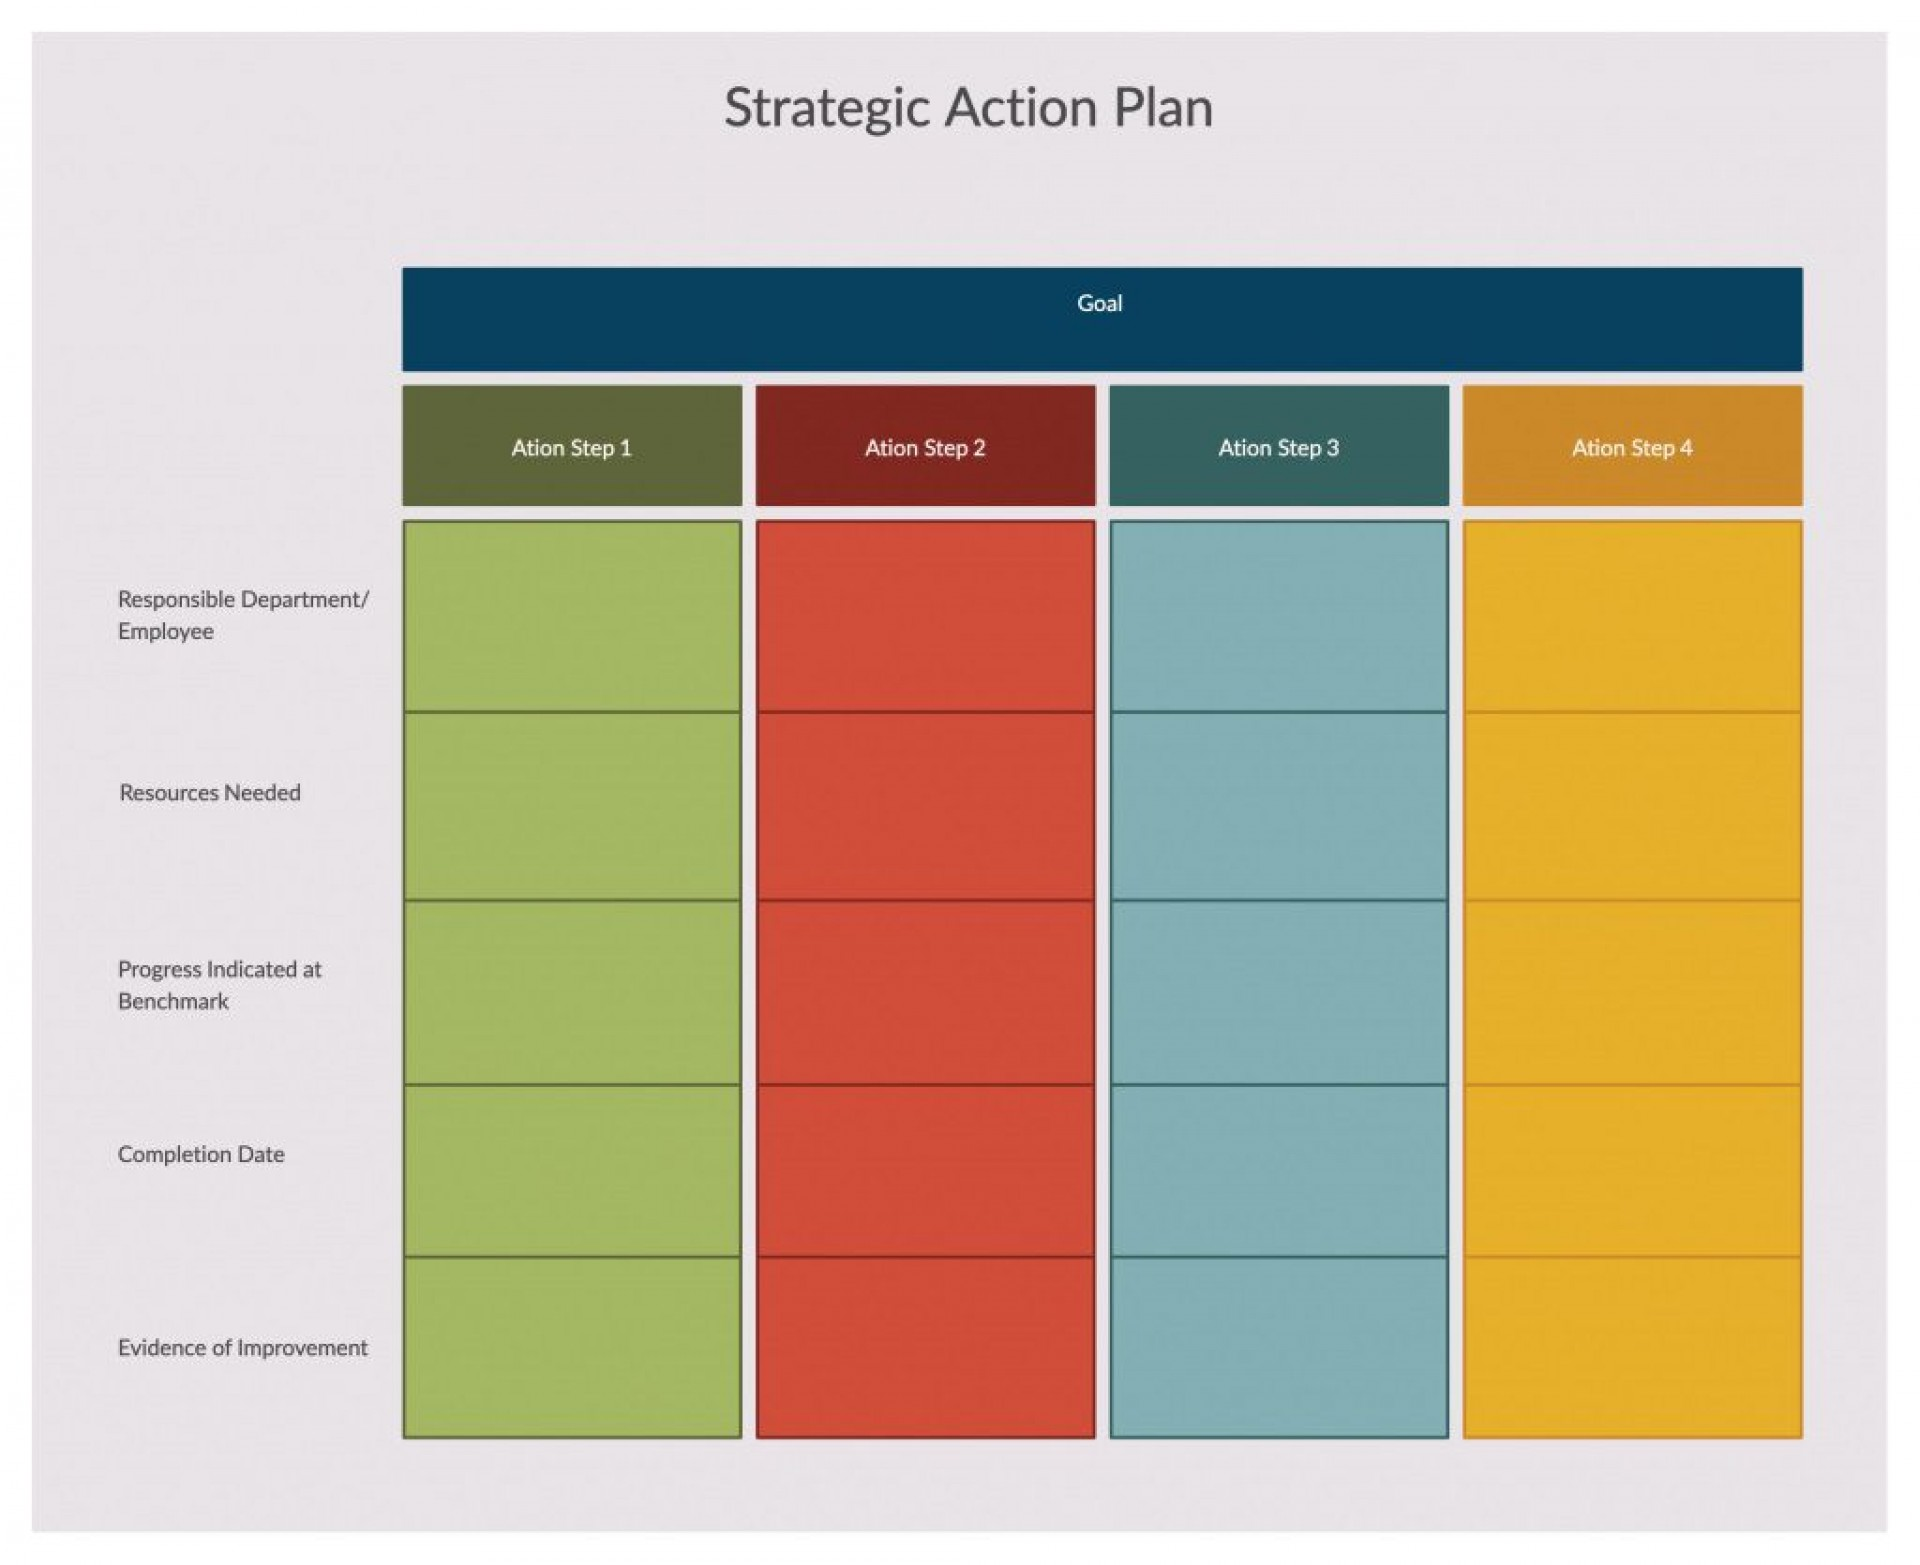 009 Imposing Plan Of Action Template Concept  D'action Ppt Format Excel For Student1920